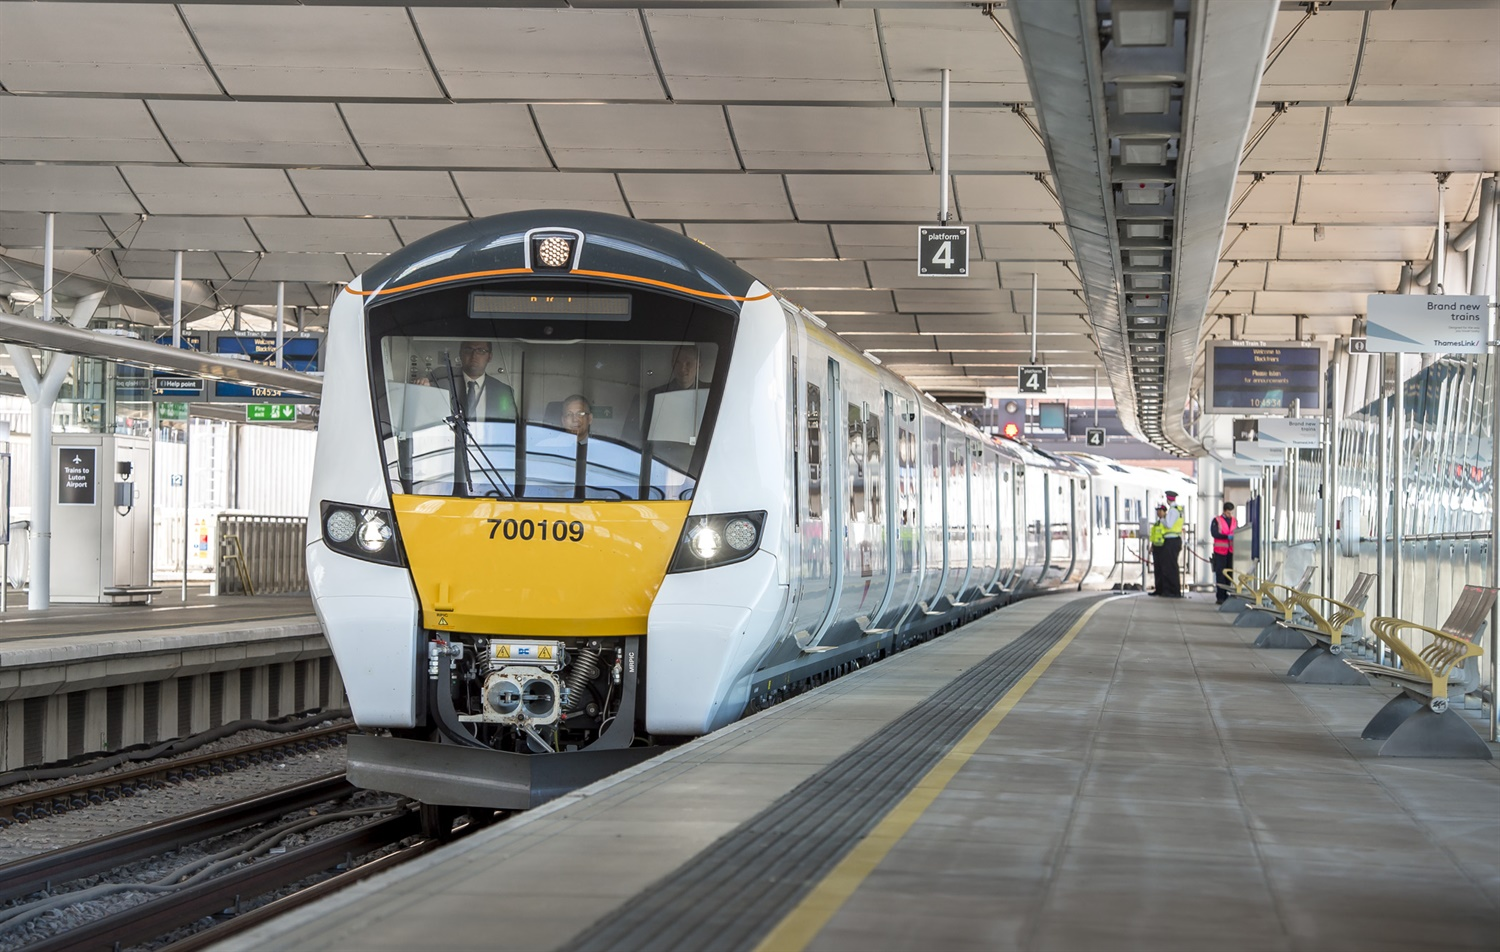 GTR seeks views on 'complete redesign' of 2018 timetable with self-contained routes